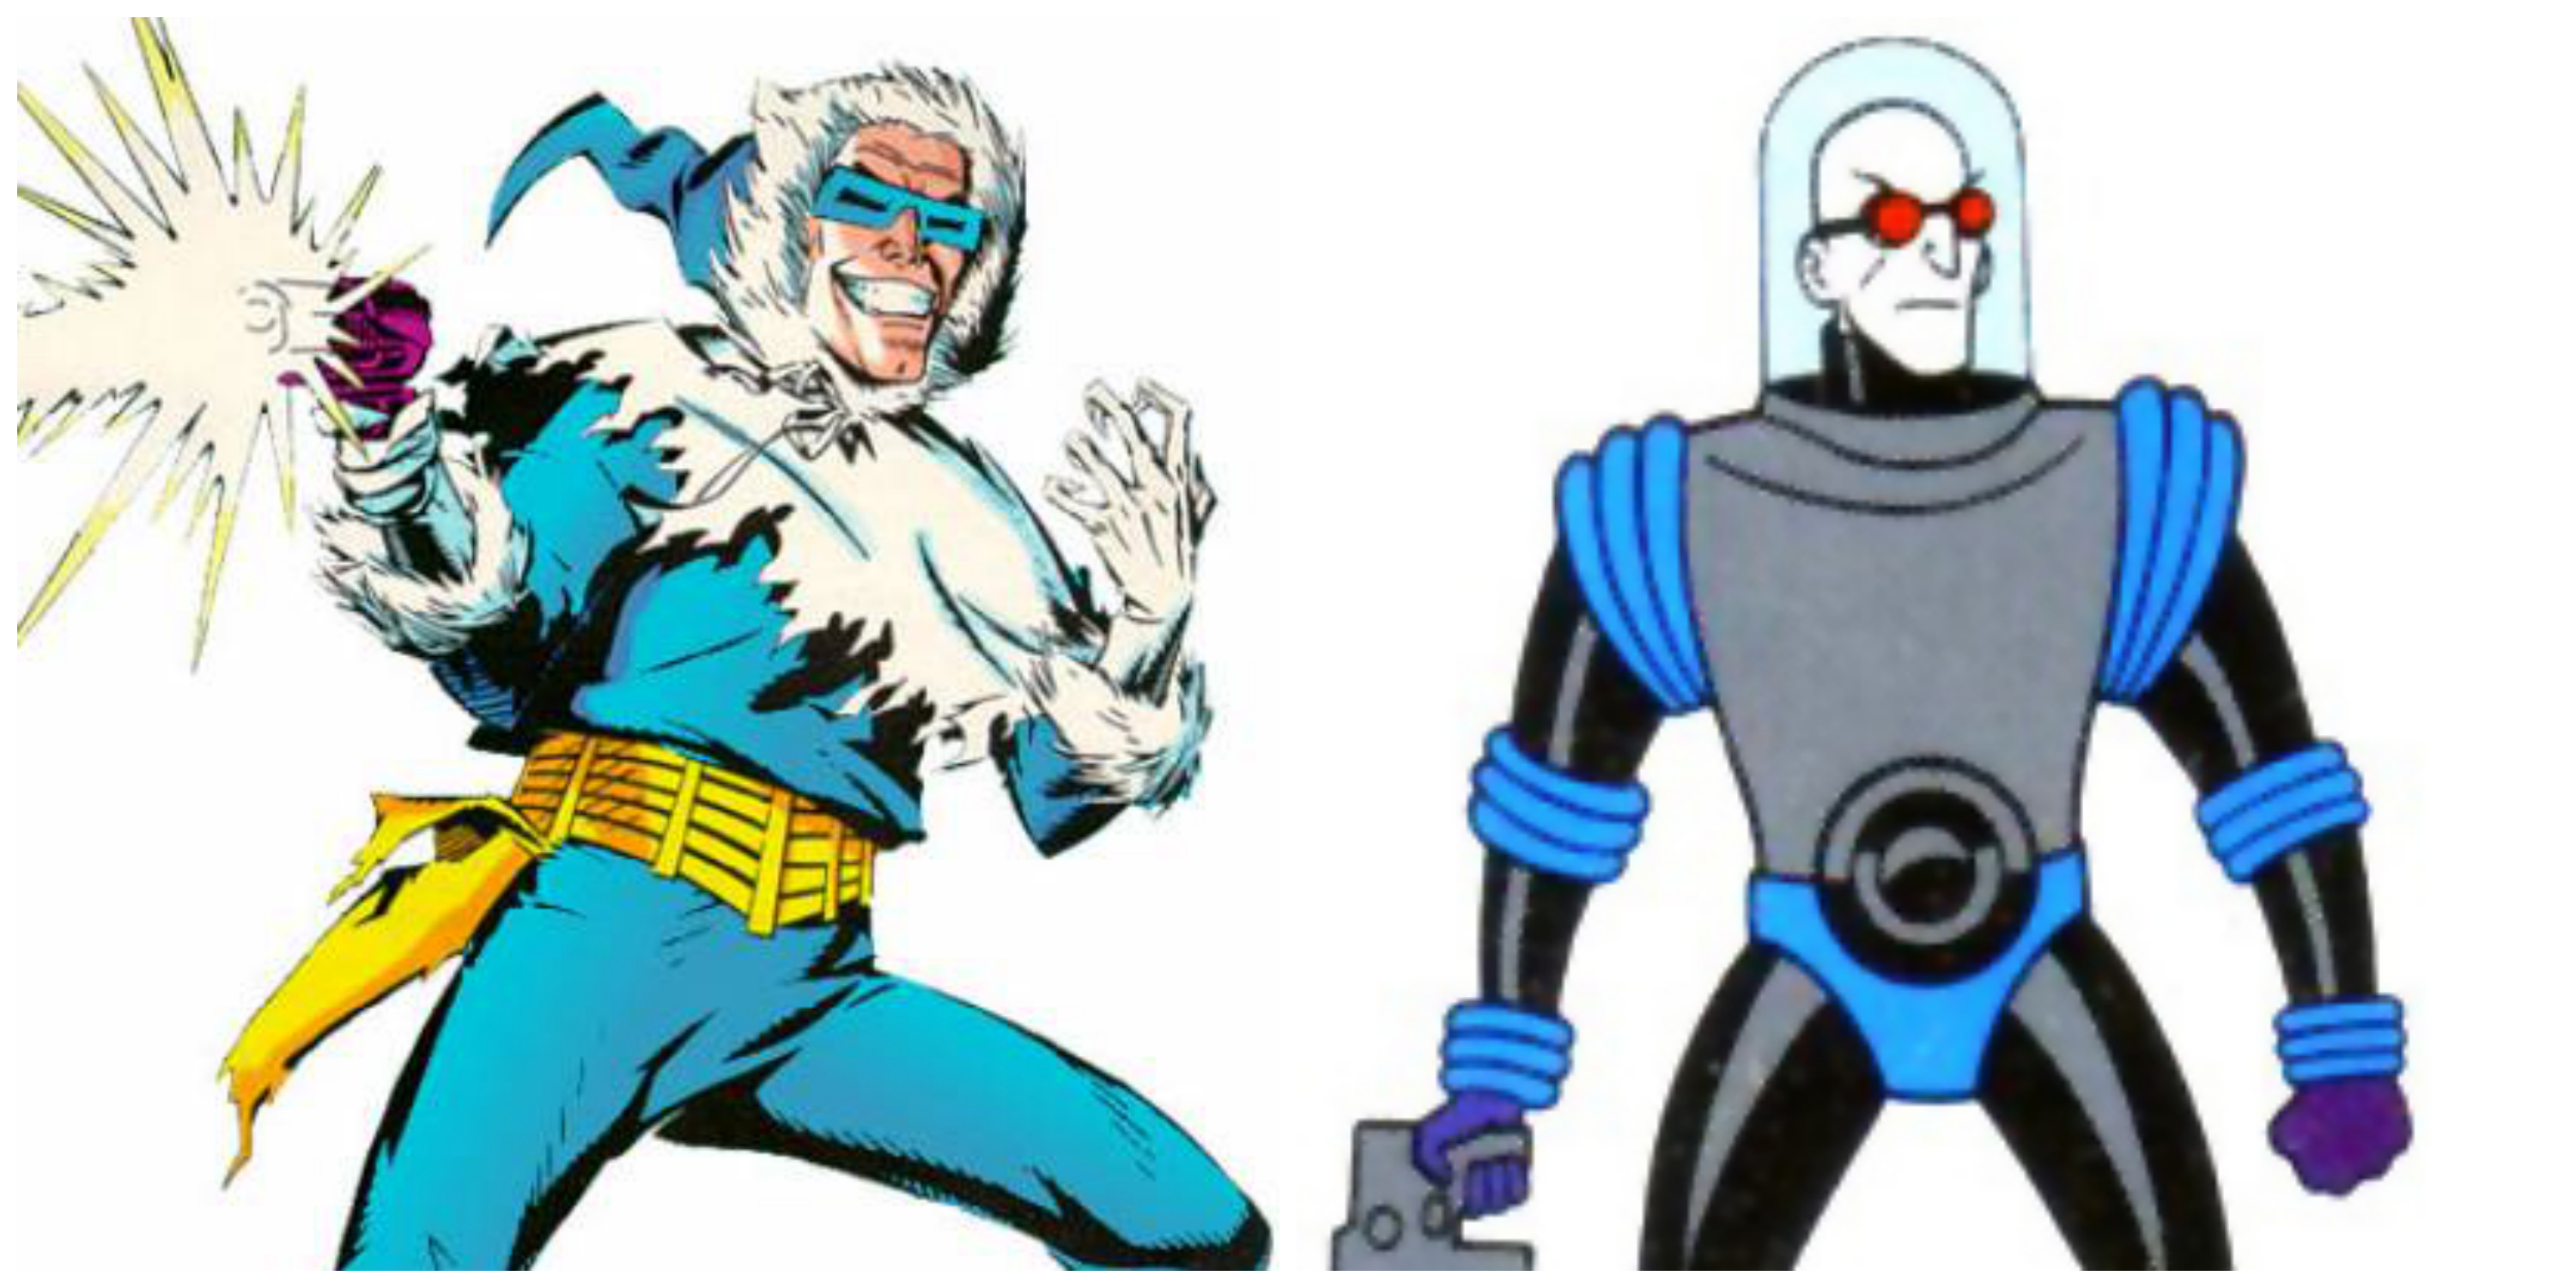 Captain Cold vs Mr Freeze